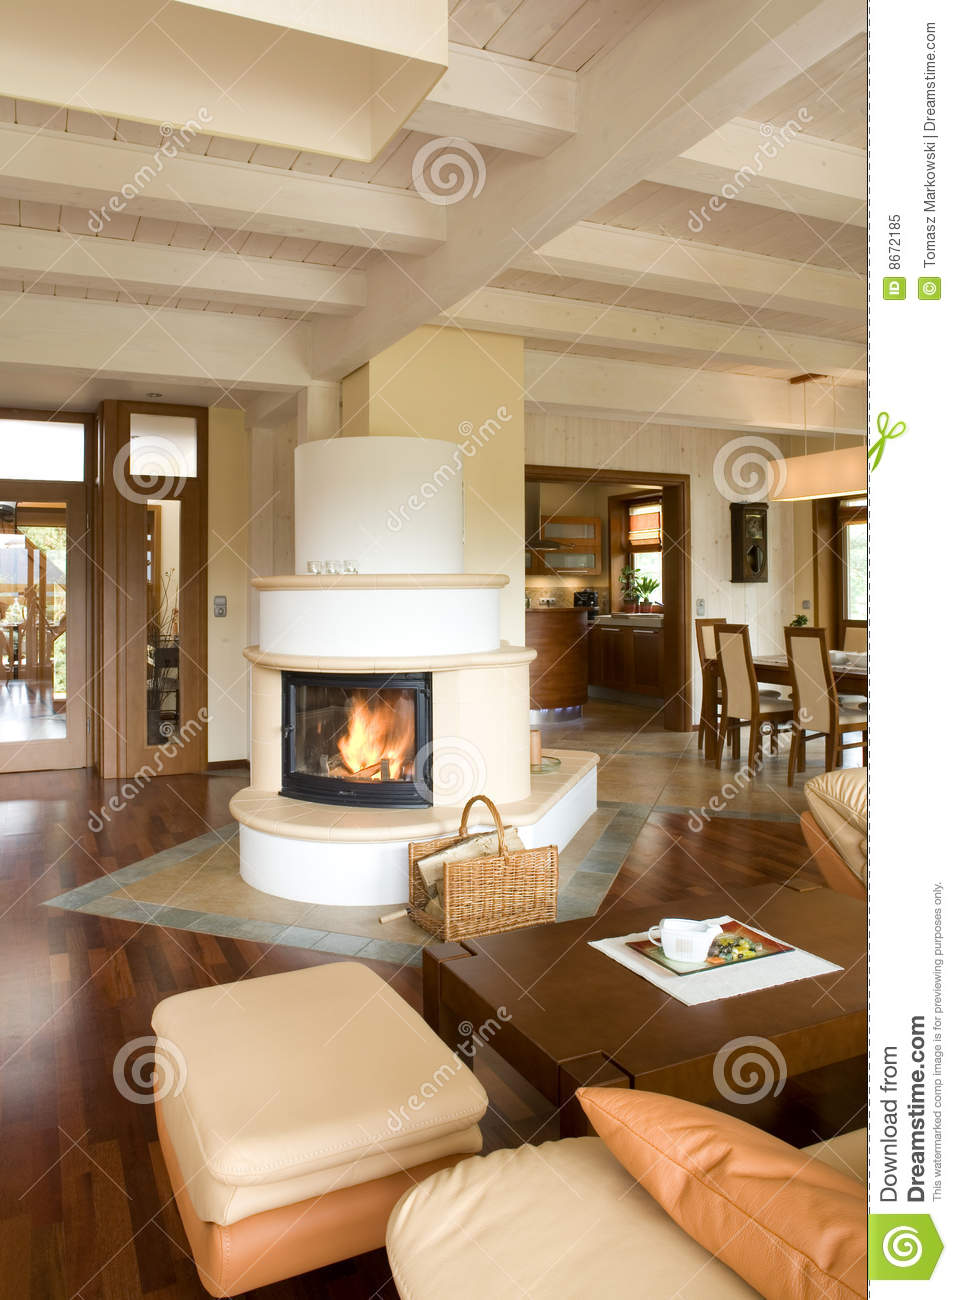 Stylish Modern Living Room With Fireplace Royalty Free Stock Photo Image 8672185